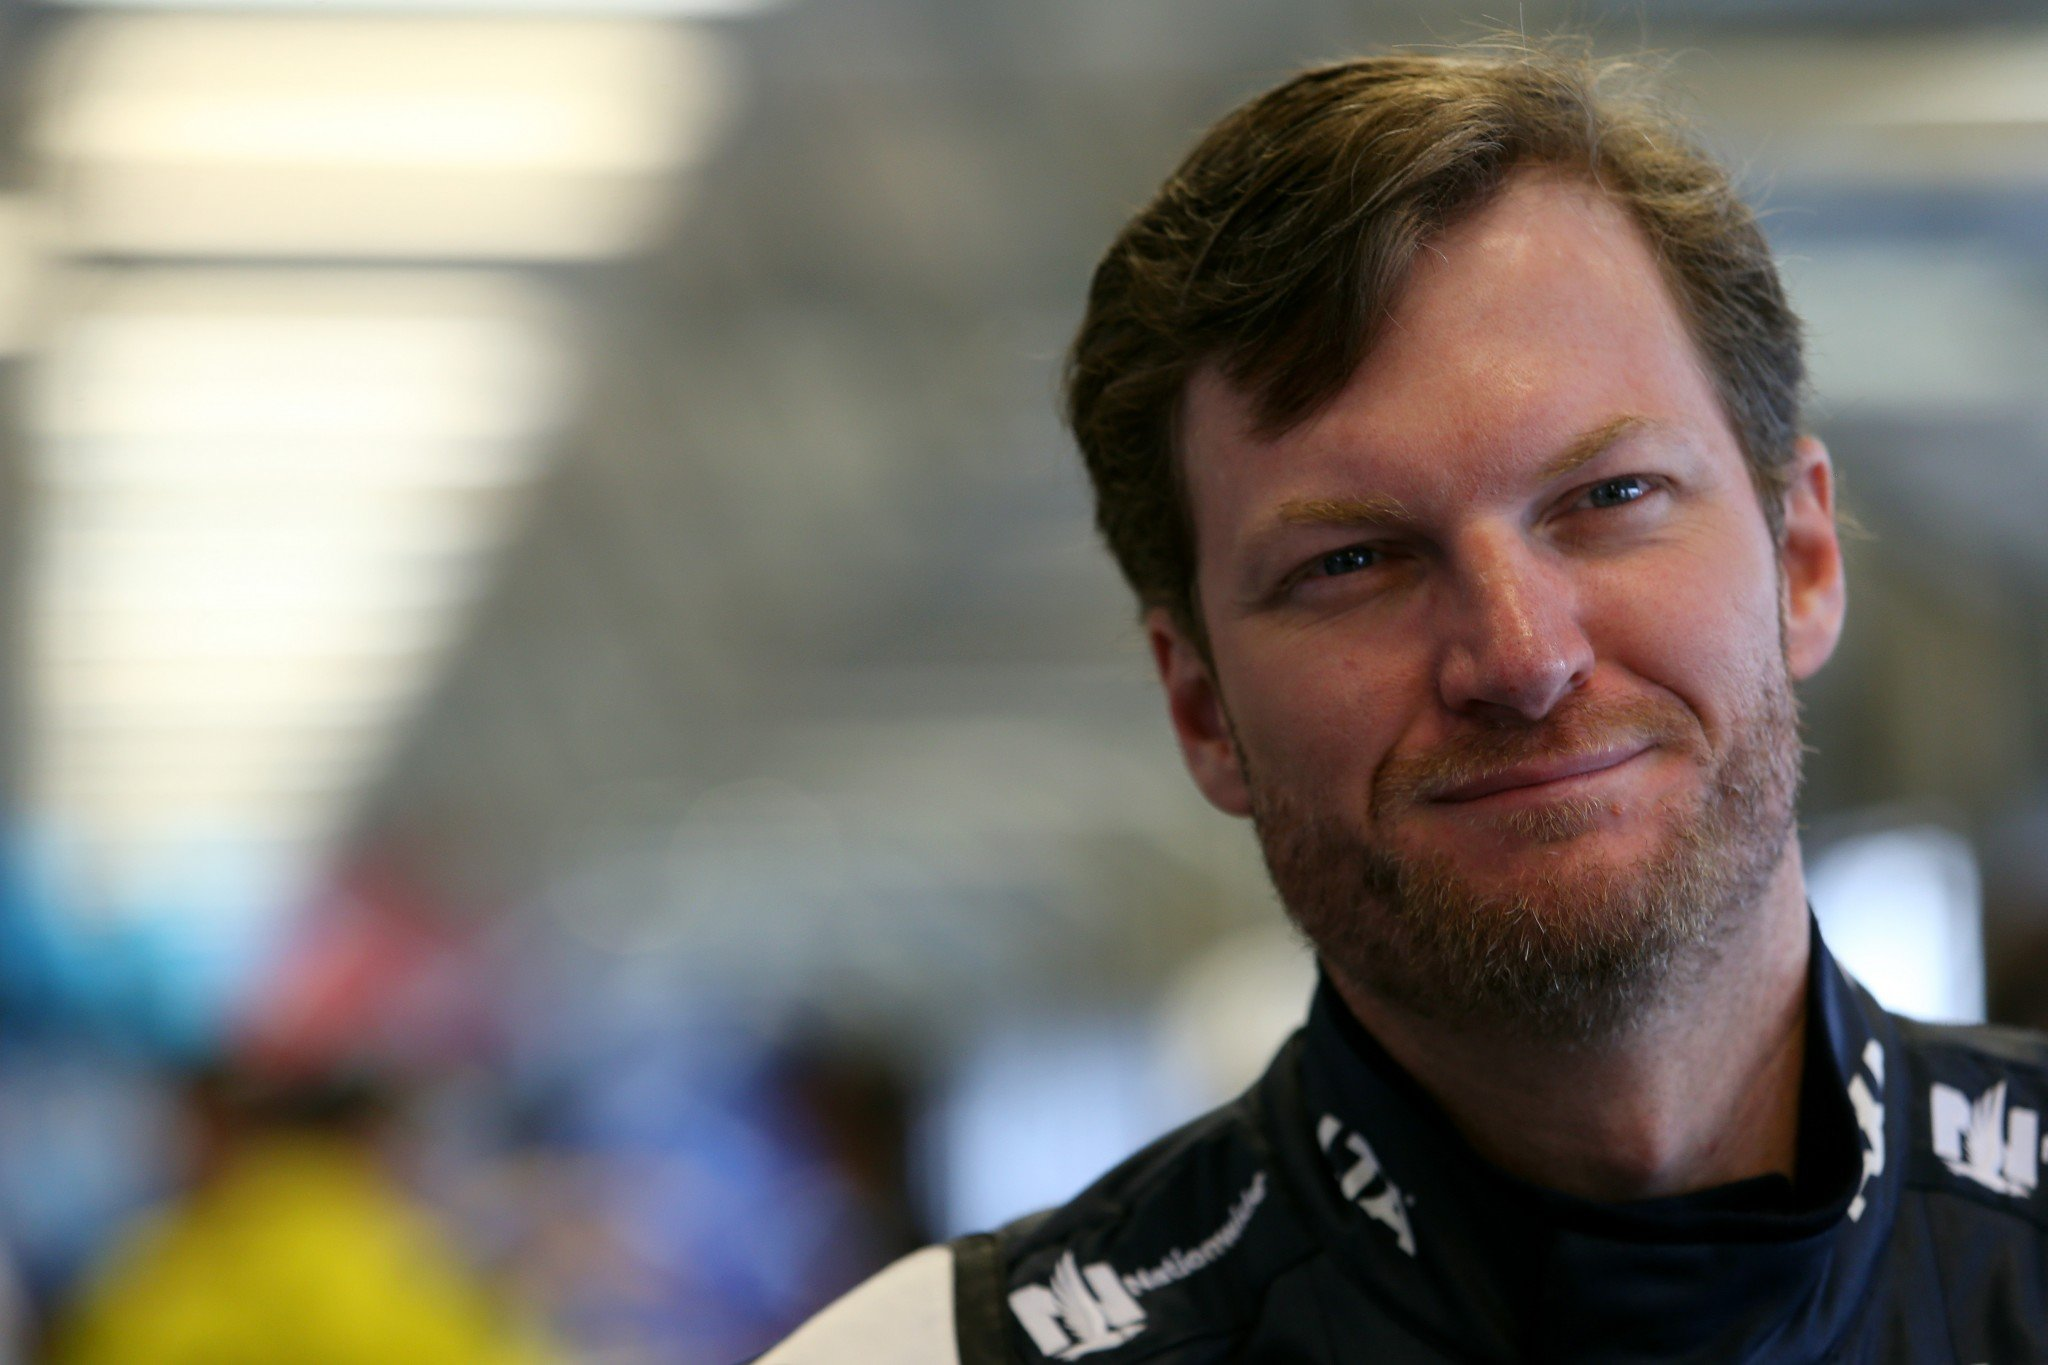 Earnhardt Jr. said he has been experiencing nausea and balance issues (Getty).